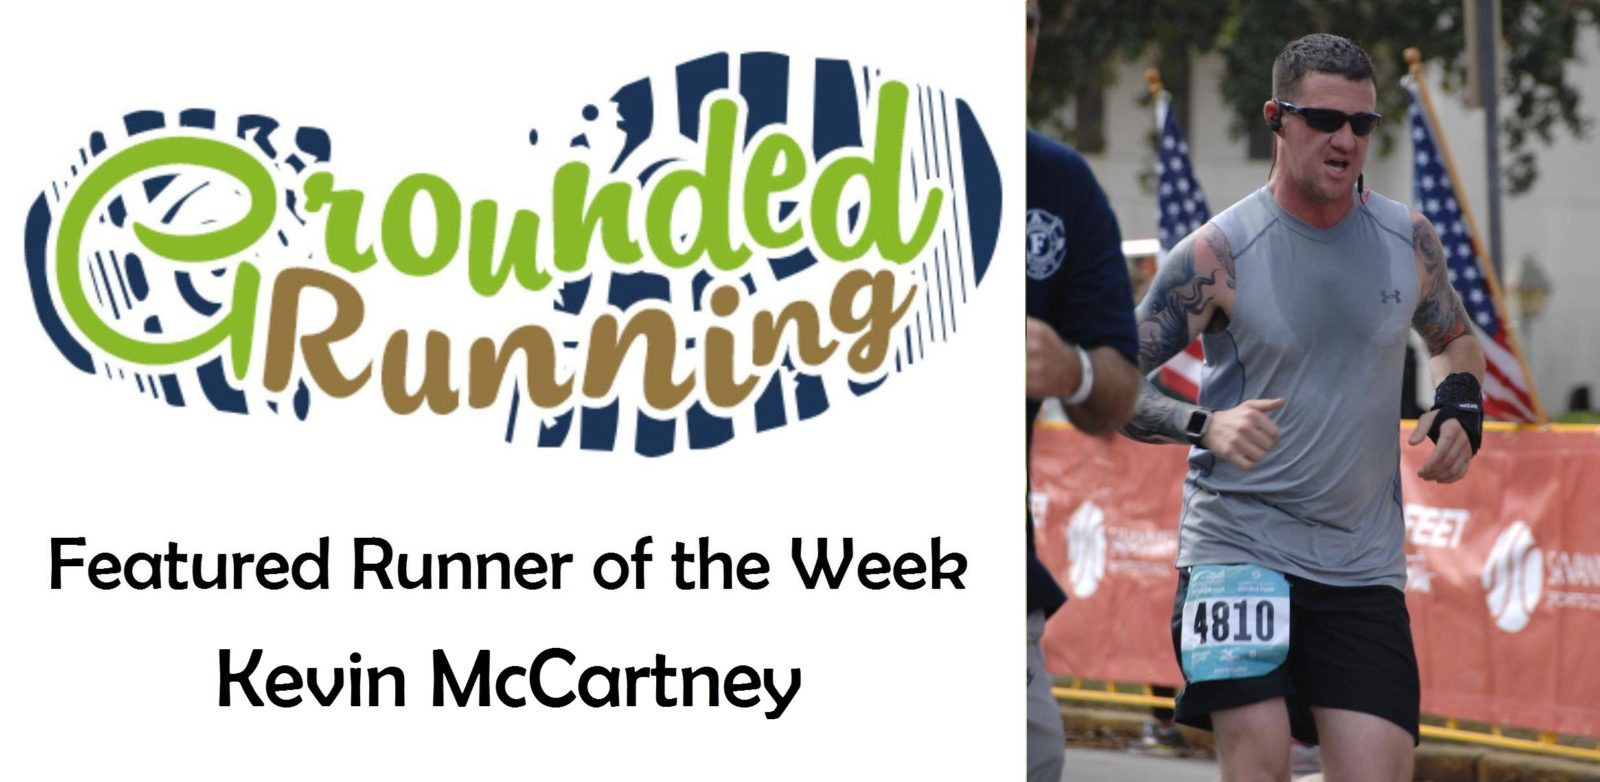 Kevin McCartney - Featured Runner of the Week